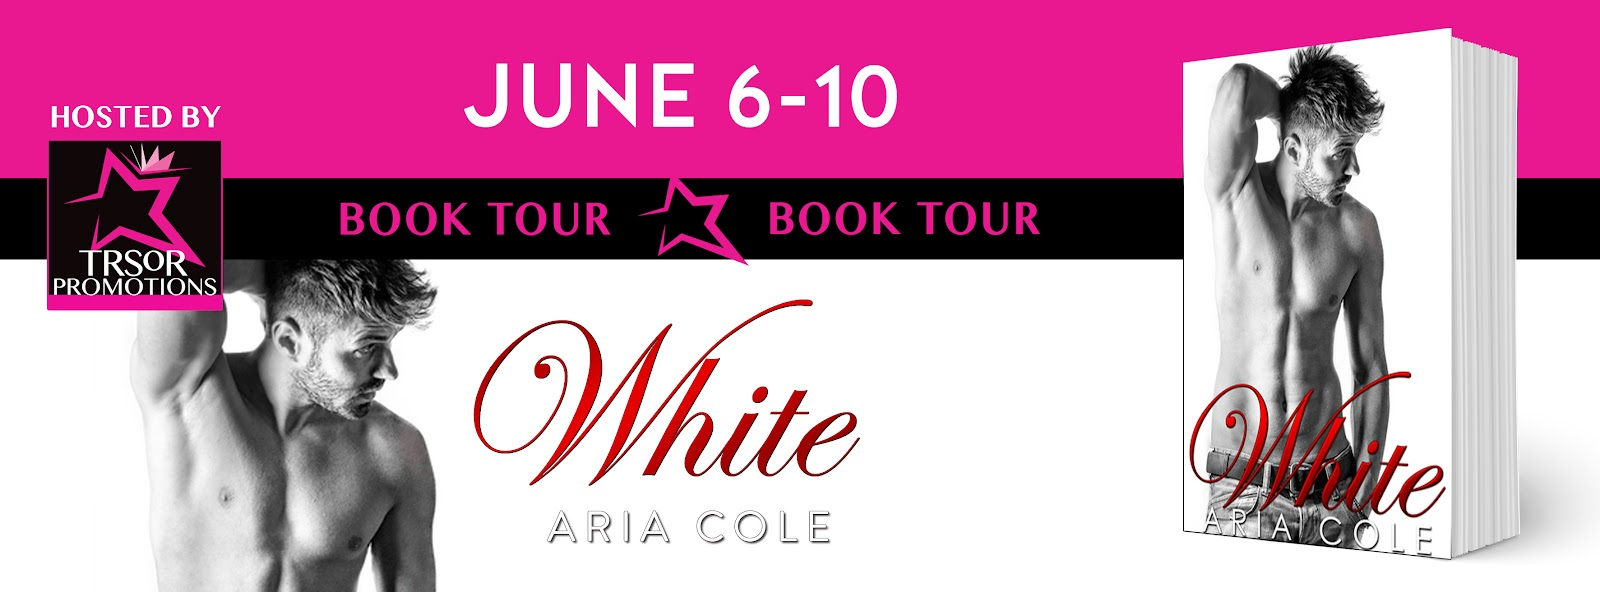 WHITE_BOOK_TOUR.jpg